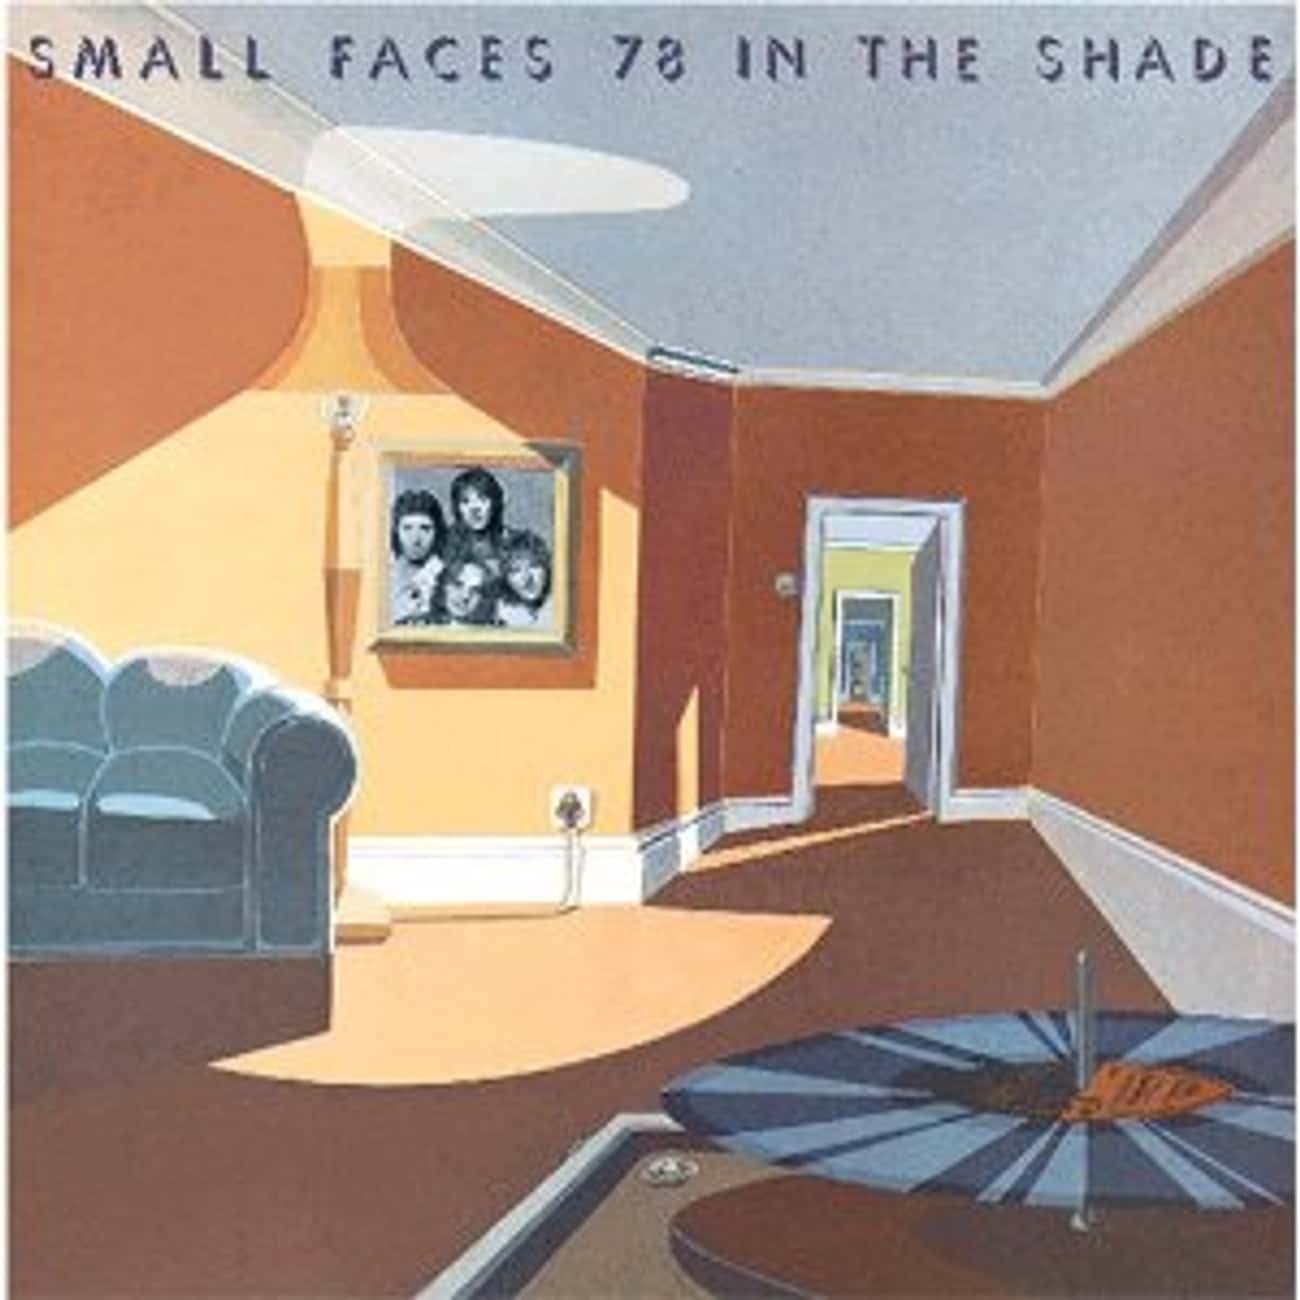 78 in the Shade is listed (or ranked) 4 on the list The Best Small Faces Albums of All Time